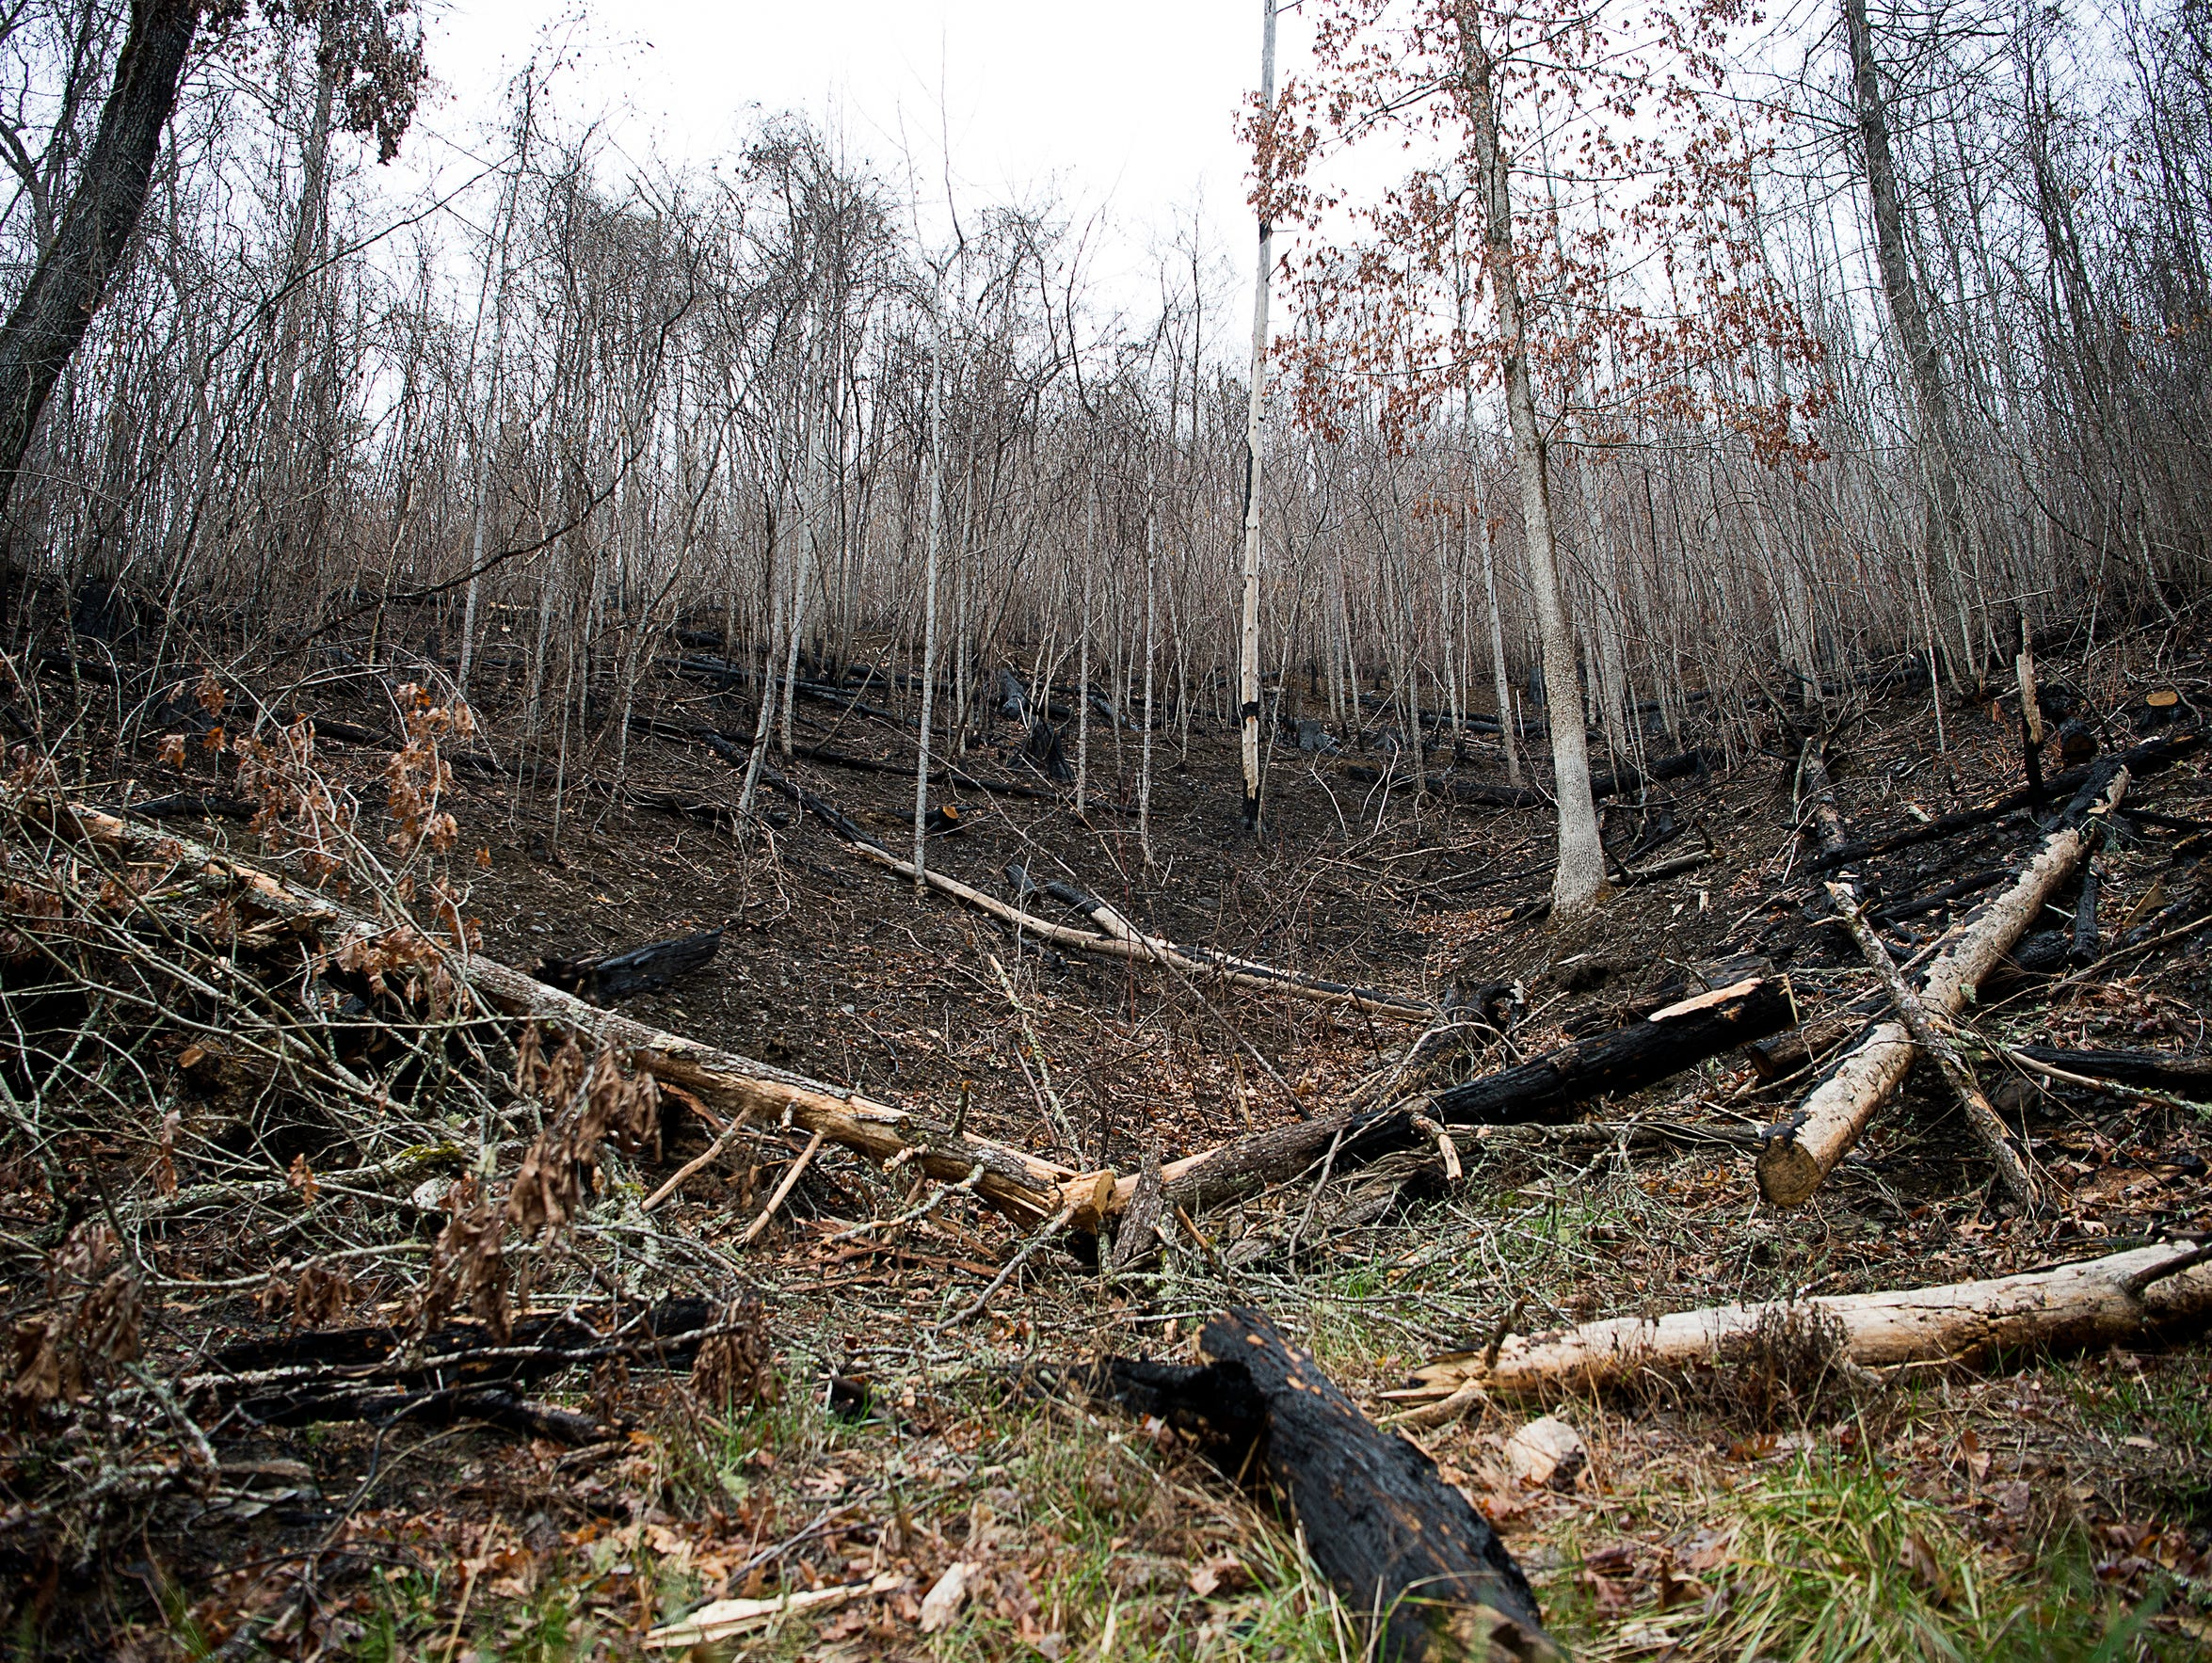 Scorched trees are strewn next to a visible burn line,